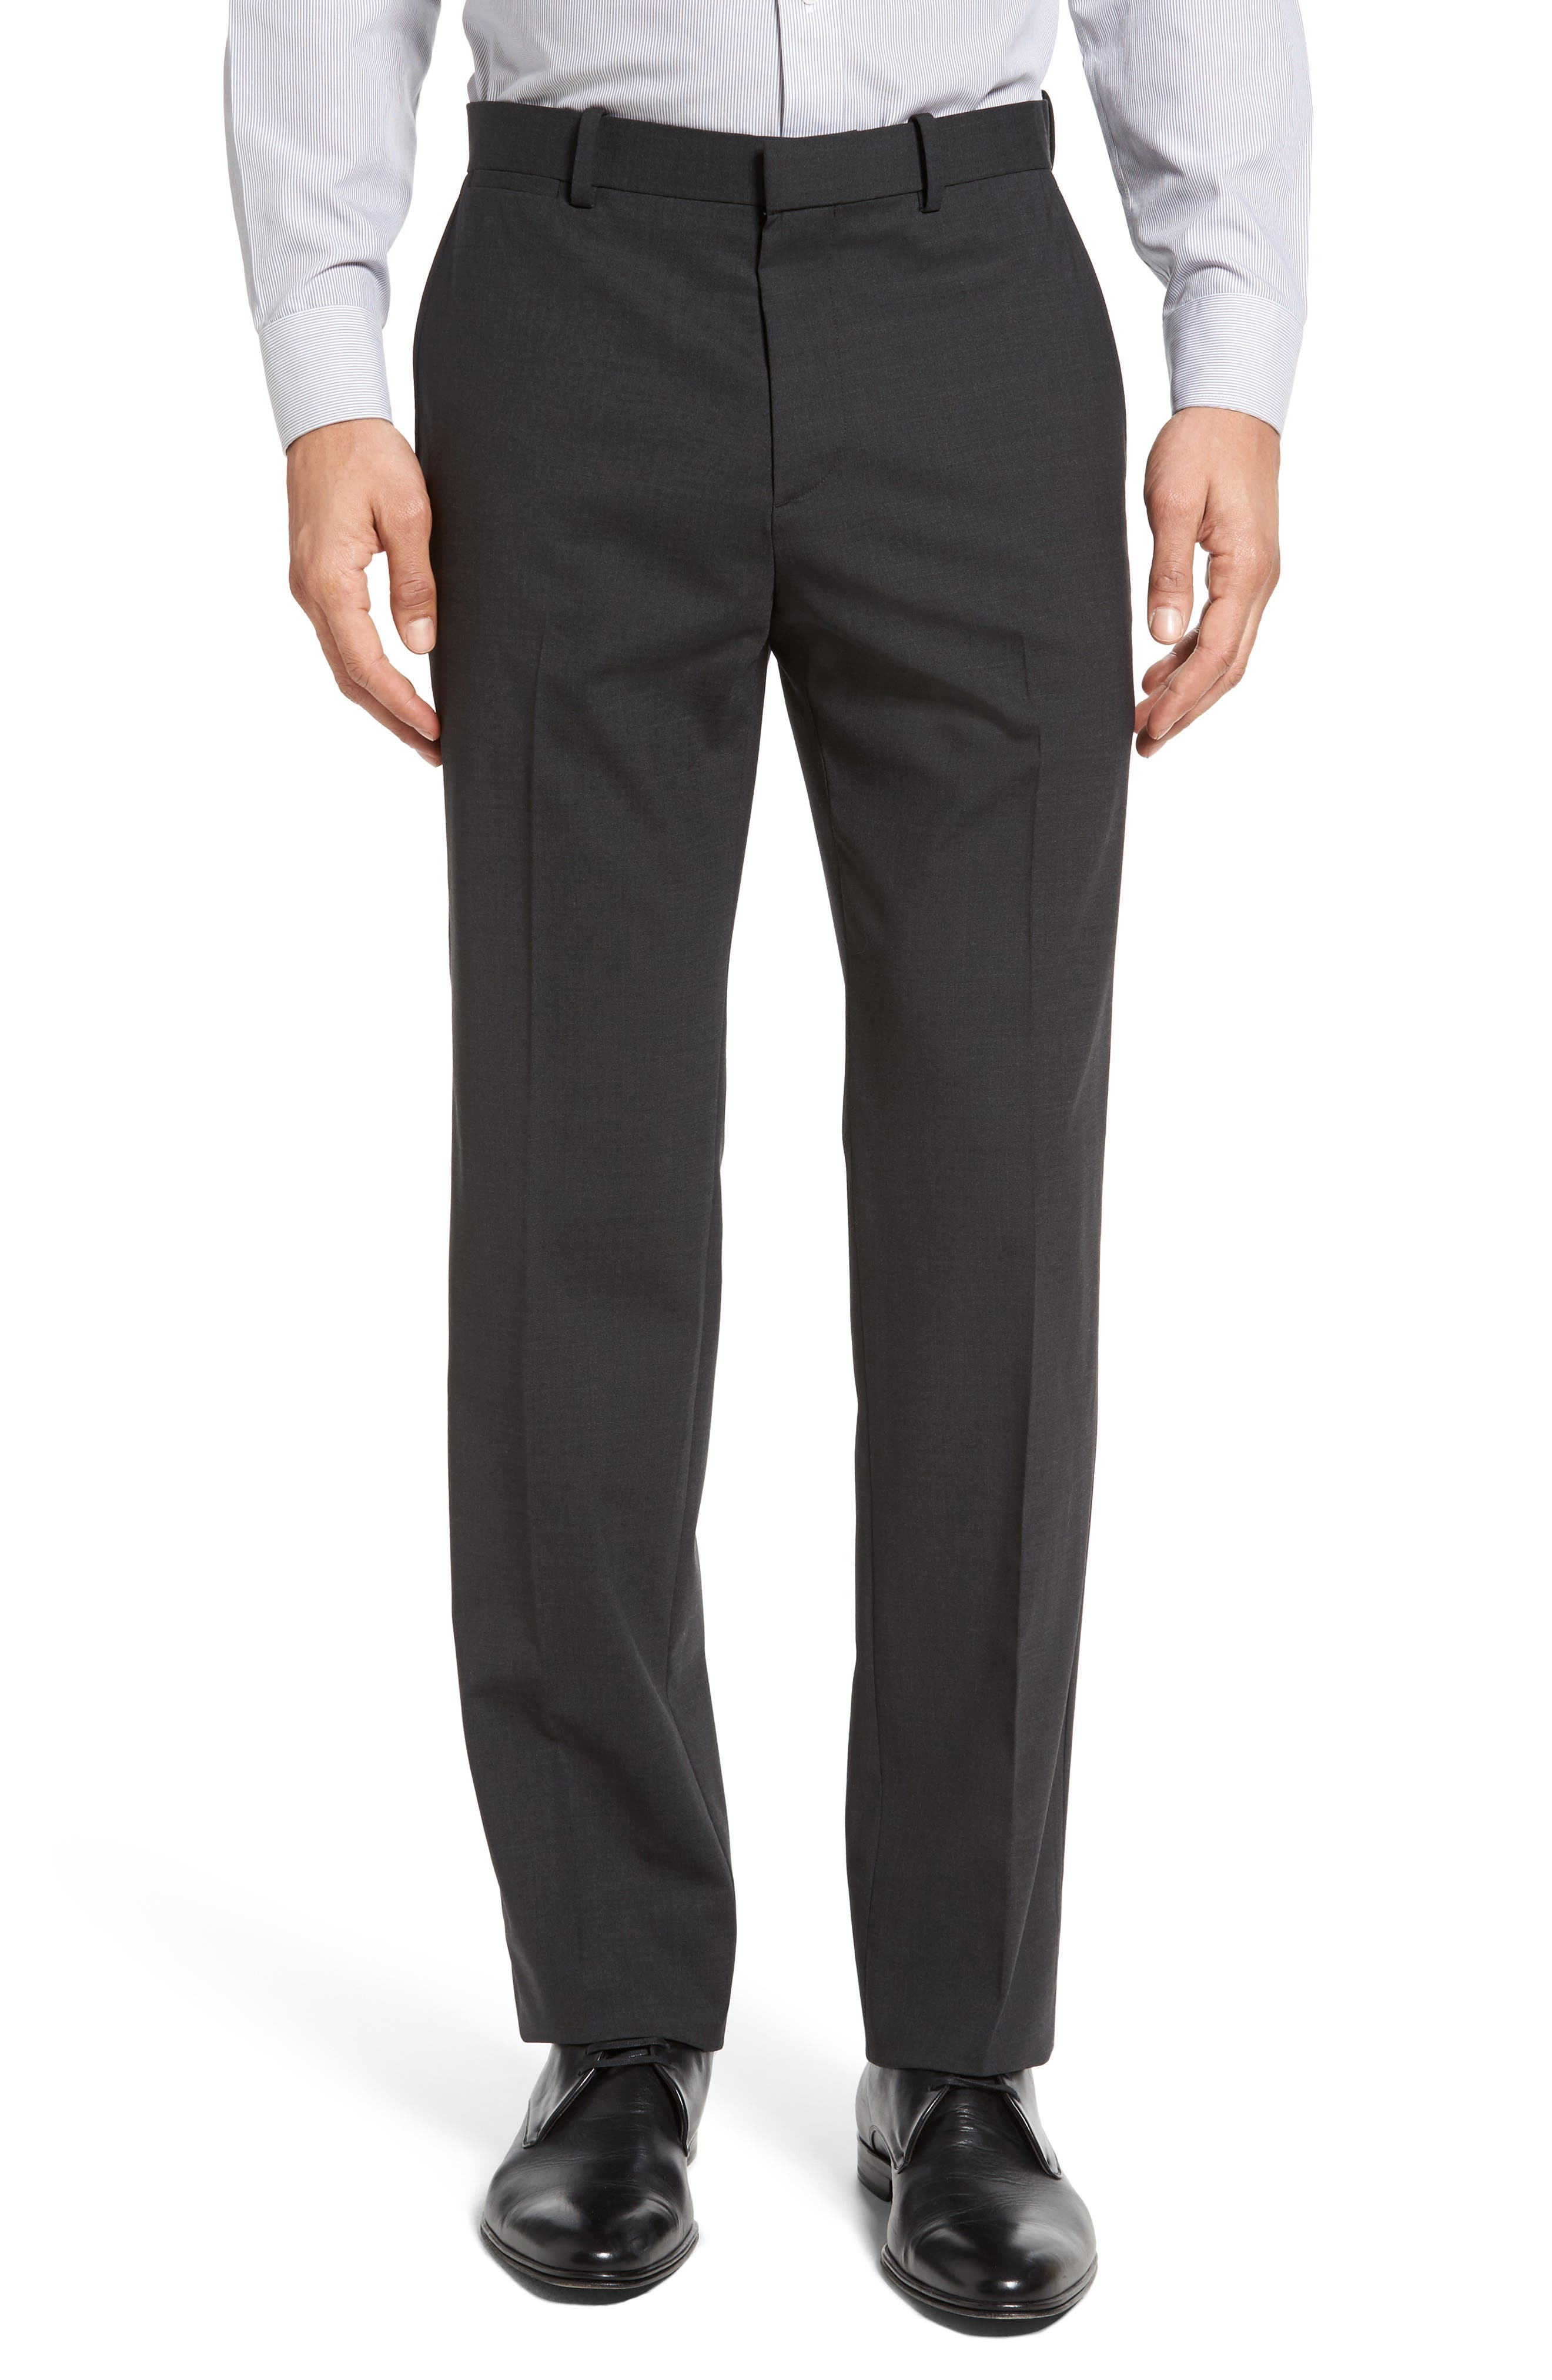 Marlo New Tailor 2 Flat Front Solid Stretch Wool Trousers,                             Main thumbnail 1, color,                             029